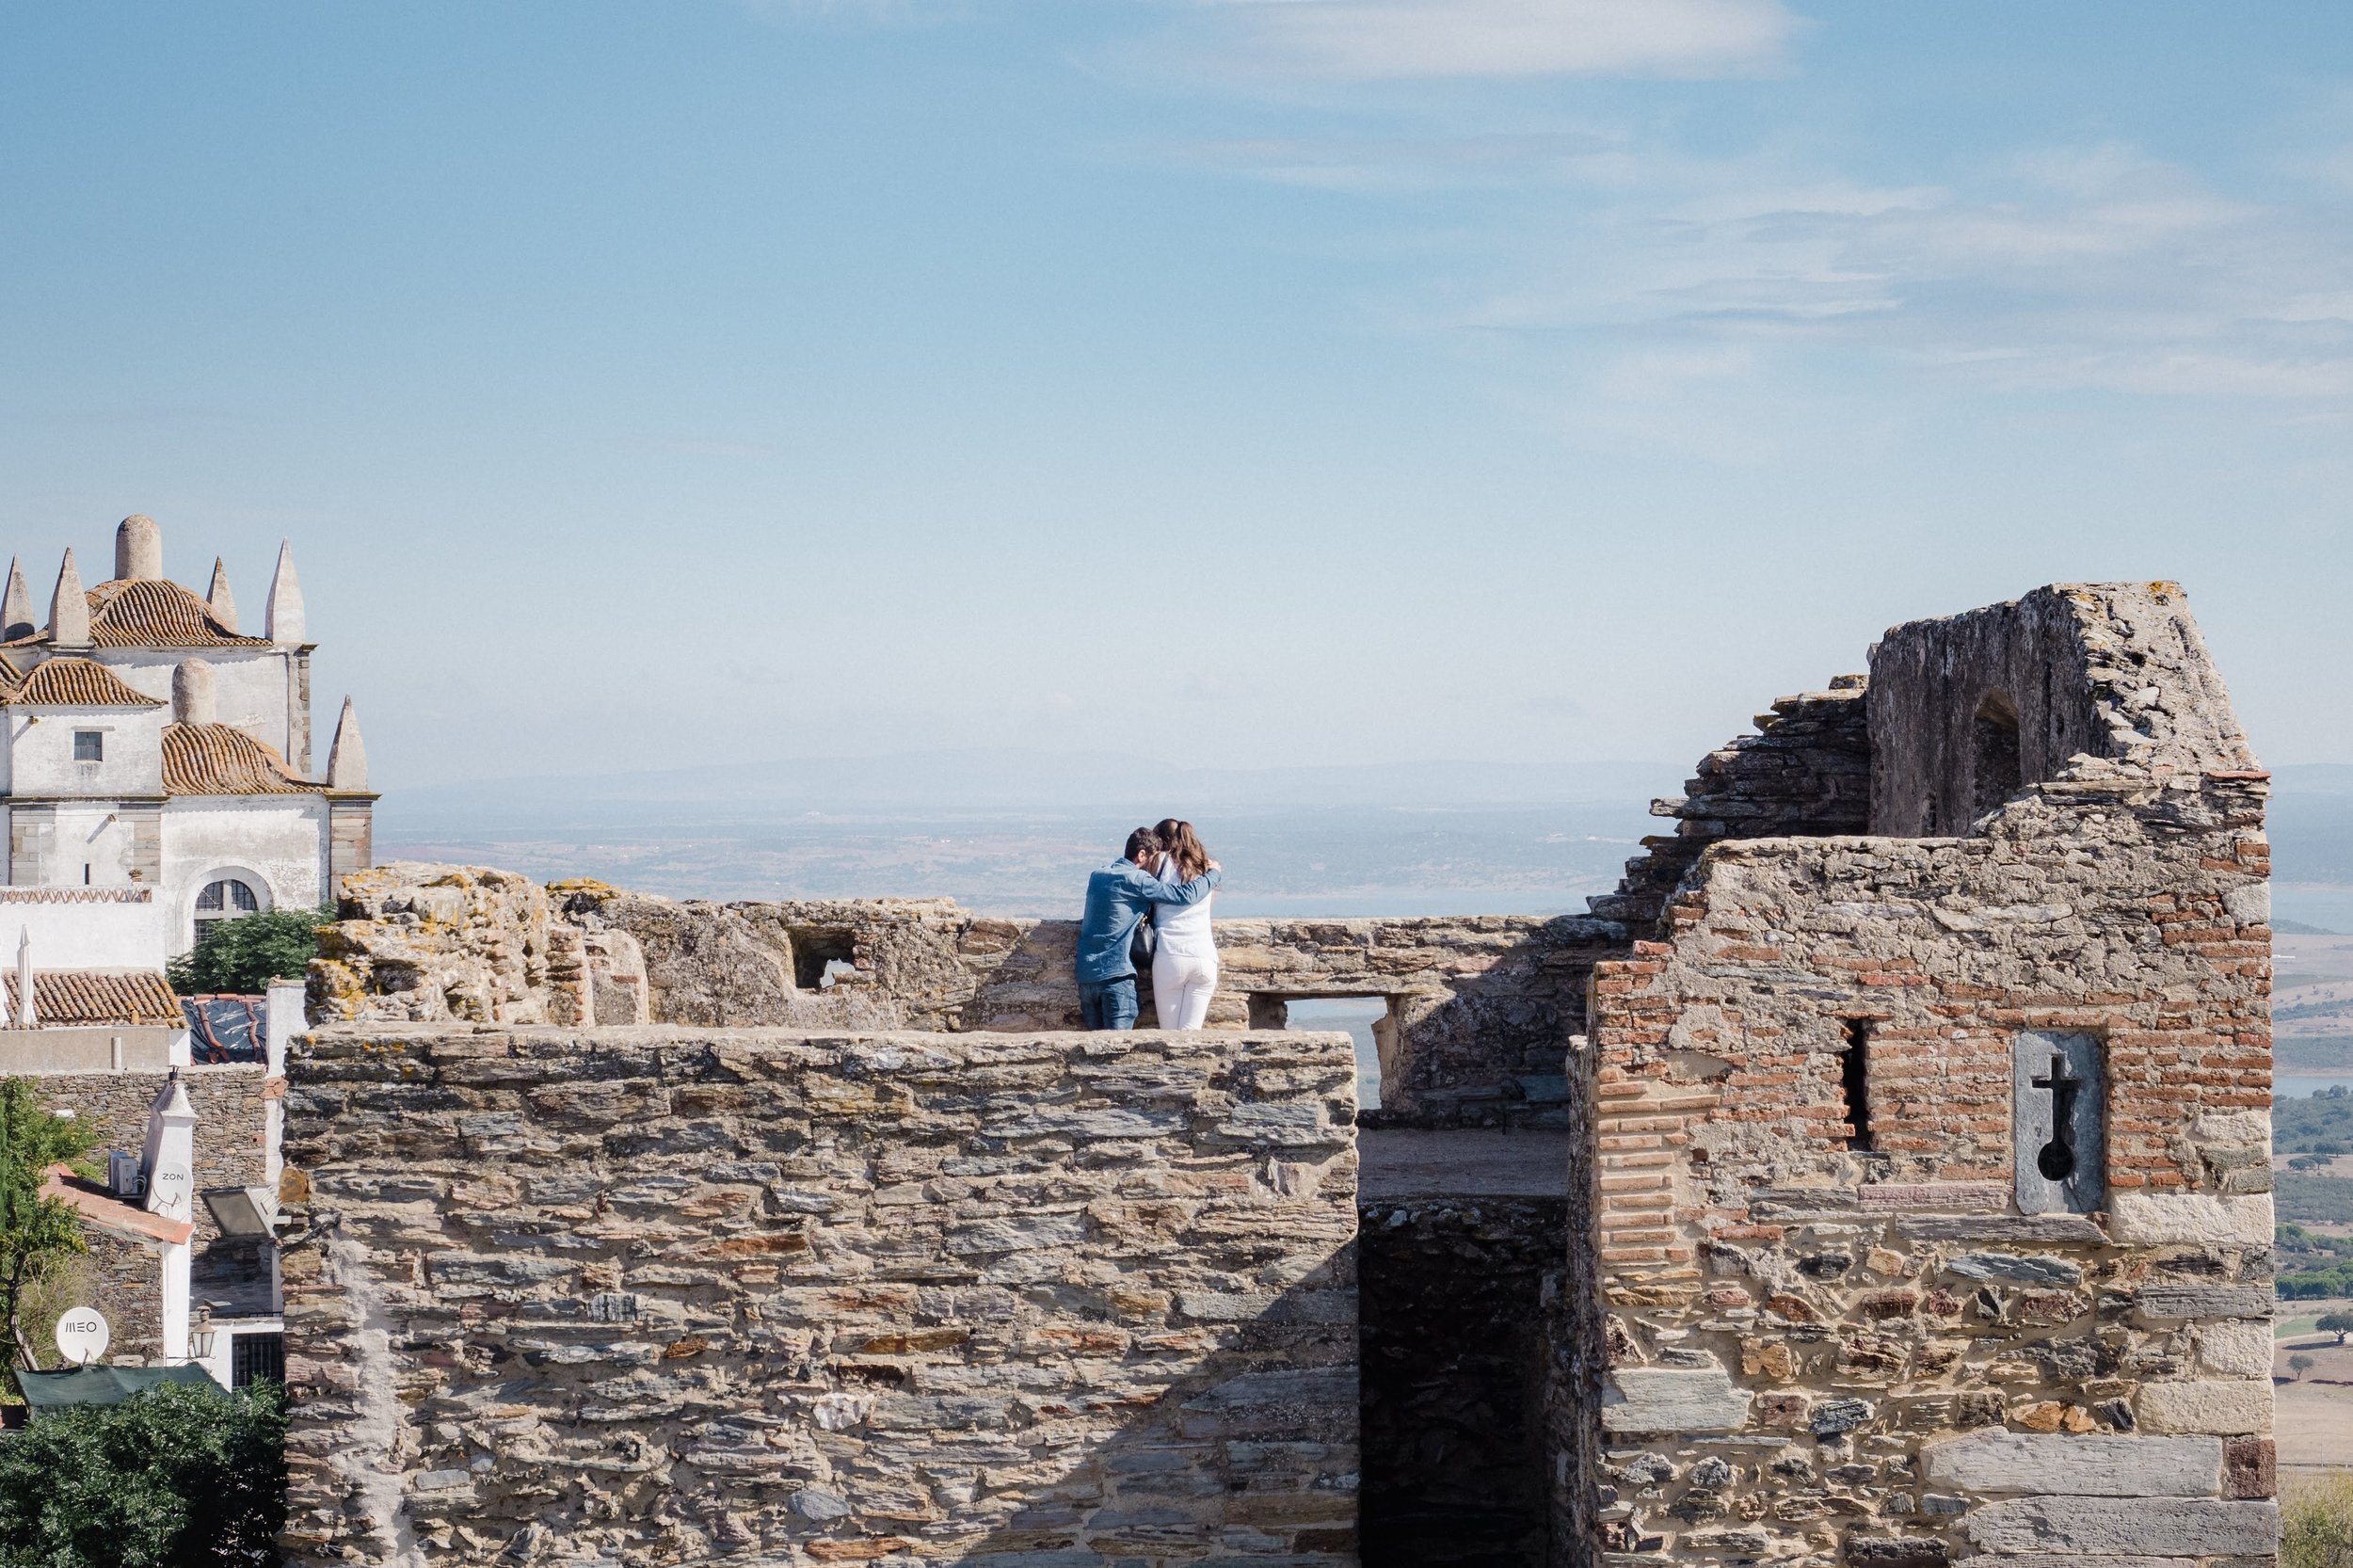 A young couple takes in the view from atop the castle in Monsaraz.